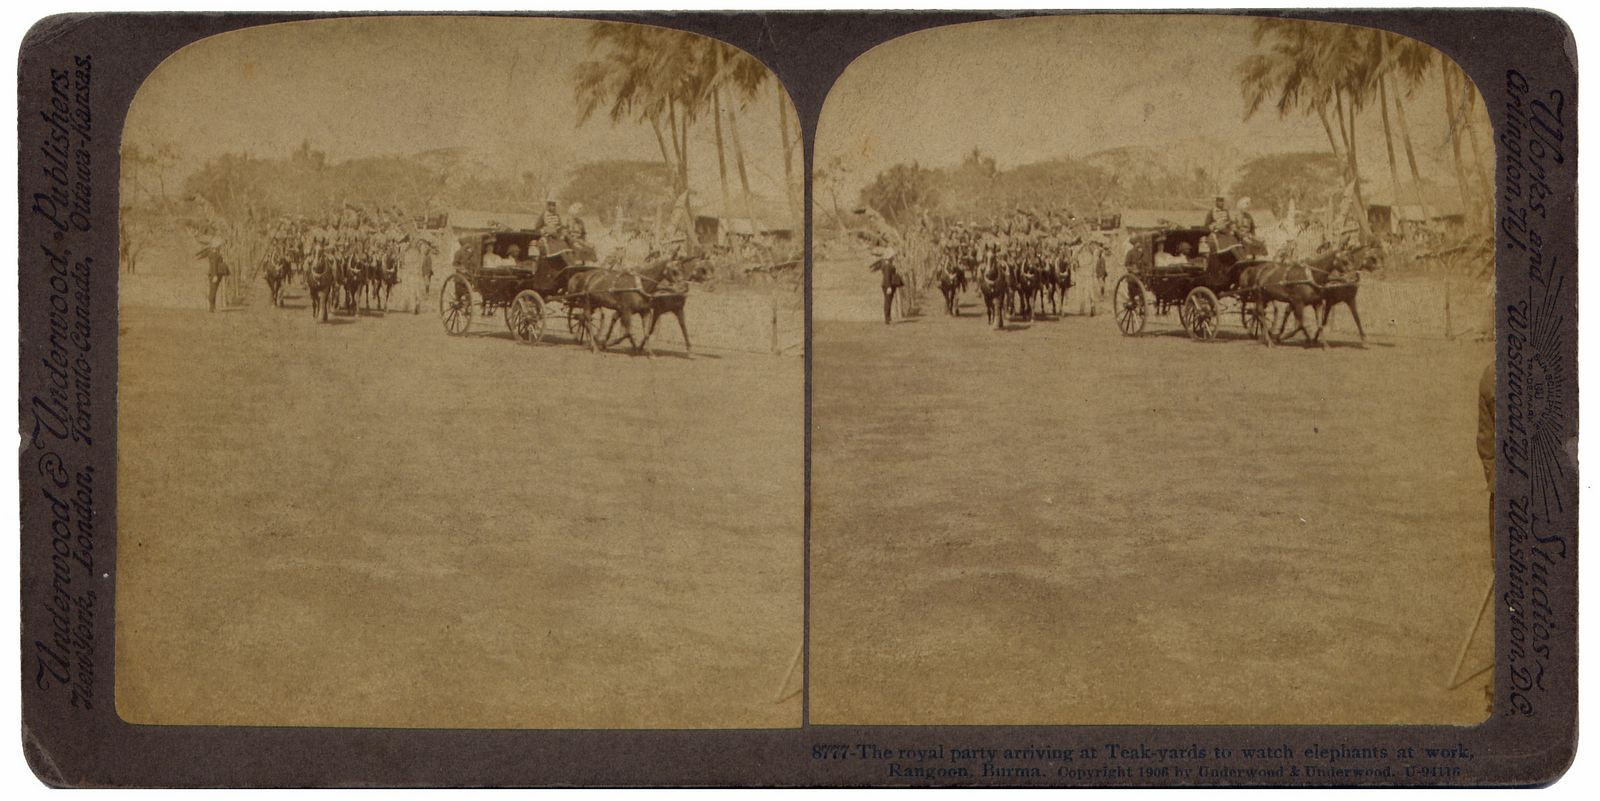 The royal party arriving at Teak-yards to watch elephants at work, Rangoon Burma